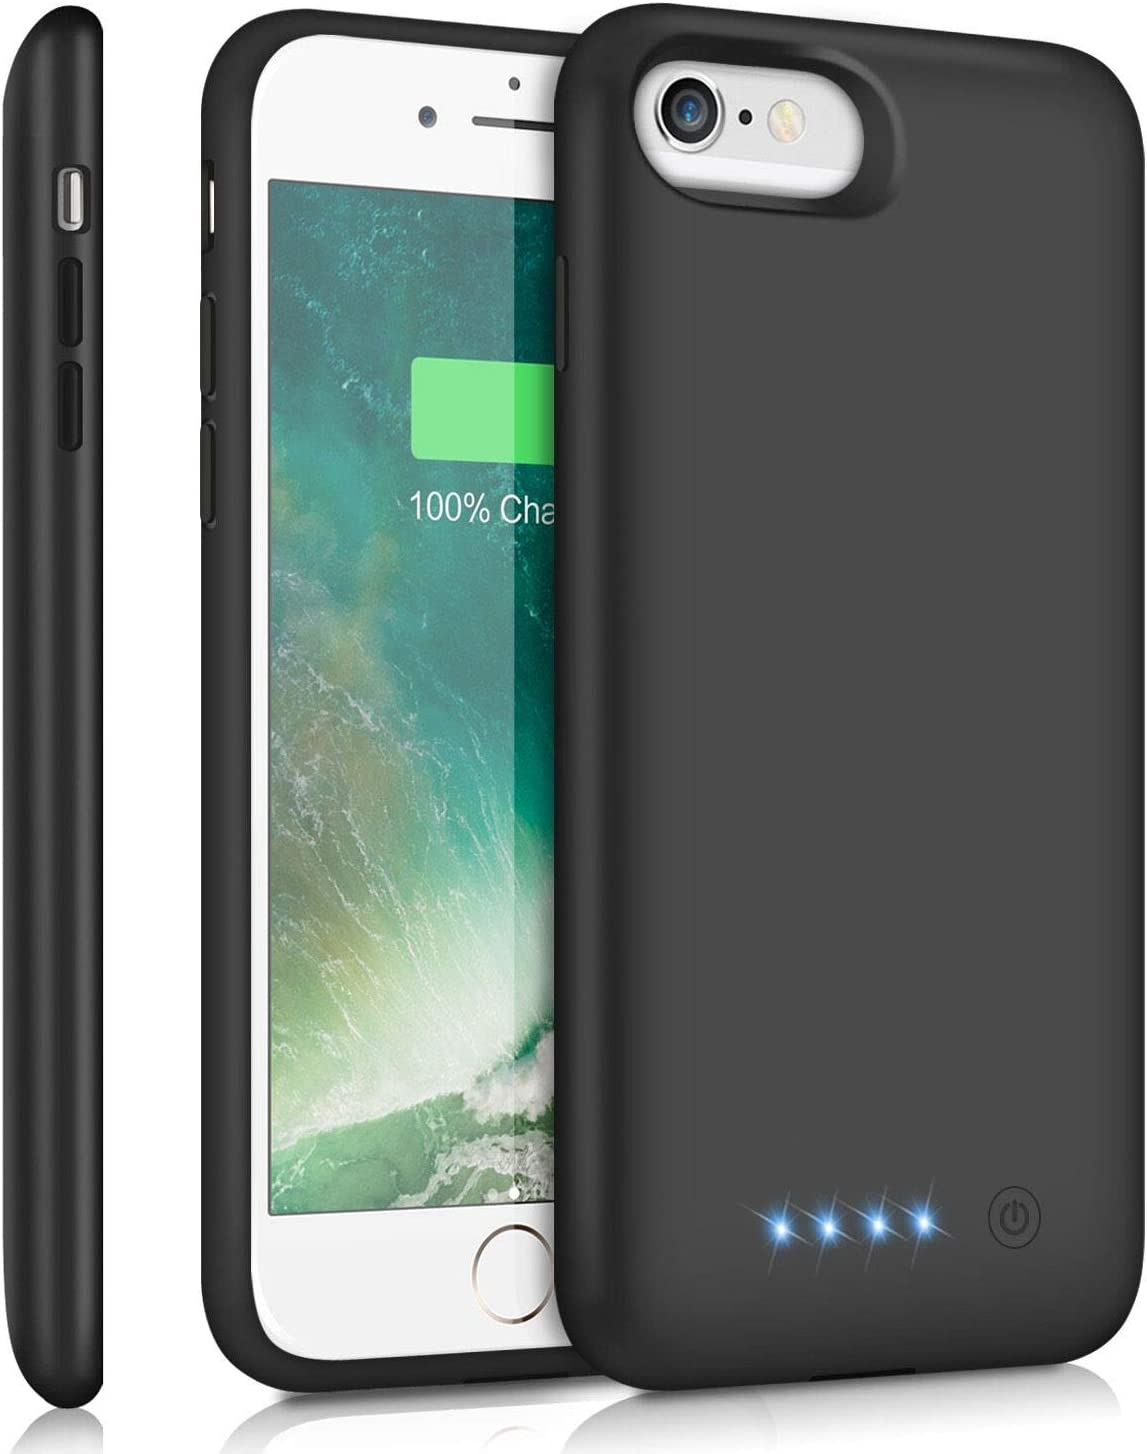 ABOE Battery Case for Max 67% OFF iPhone Gorgeous 8 7 6s Upgrad 6000mAh 2020 6 SE